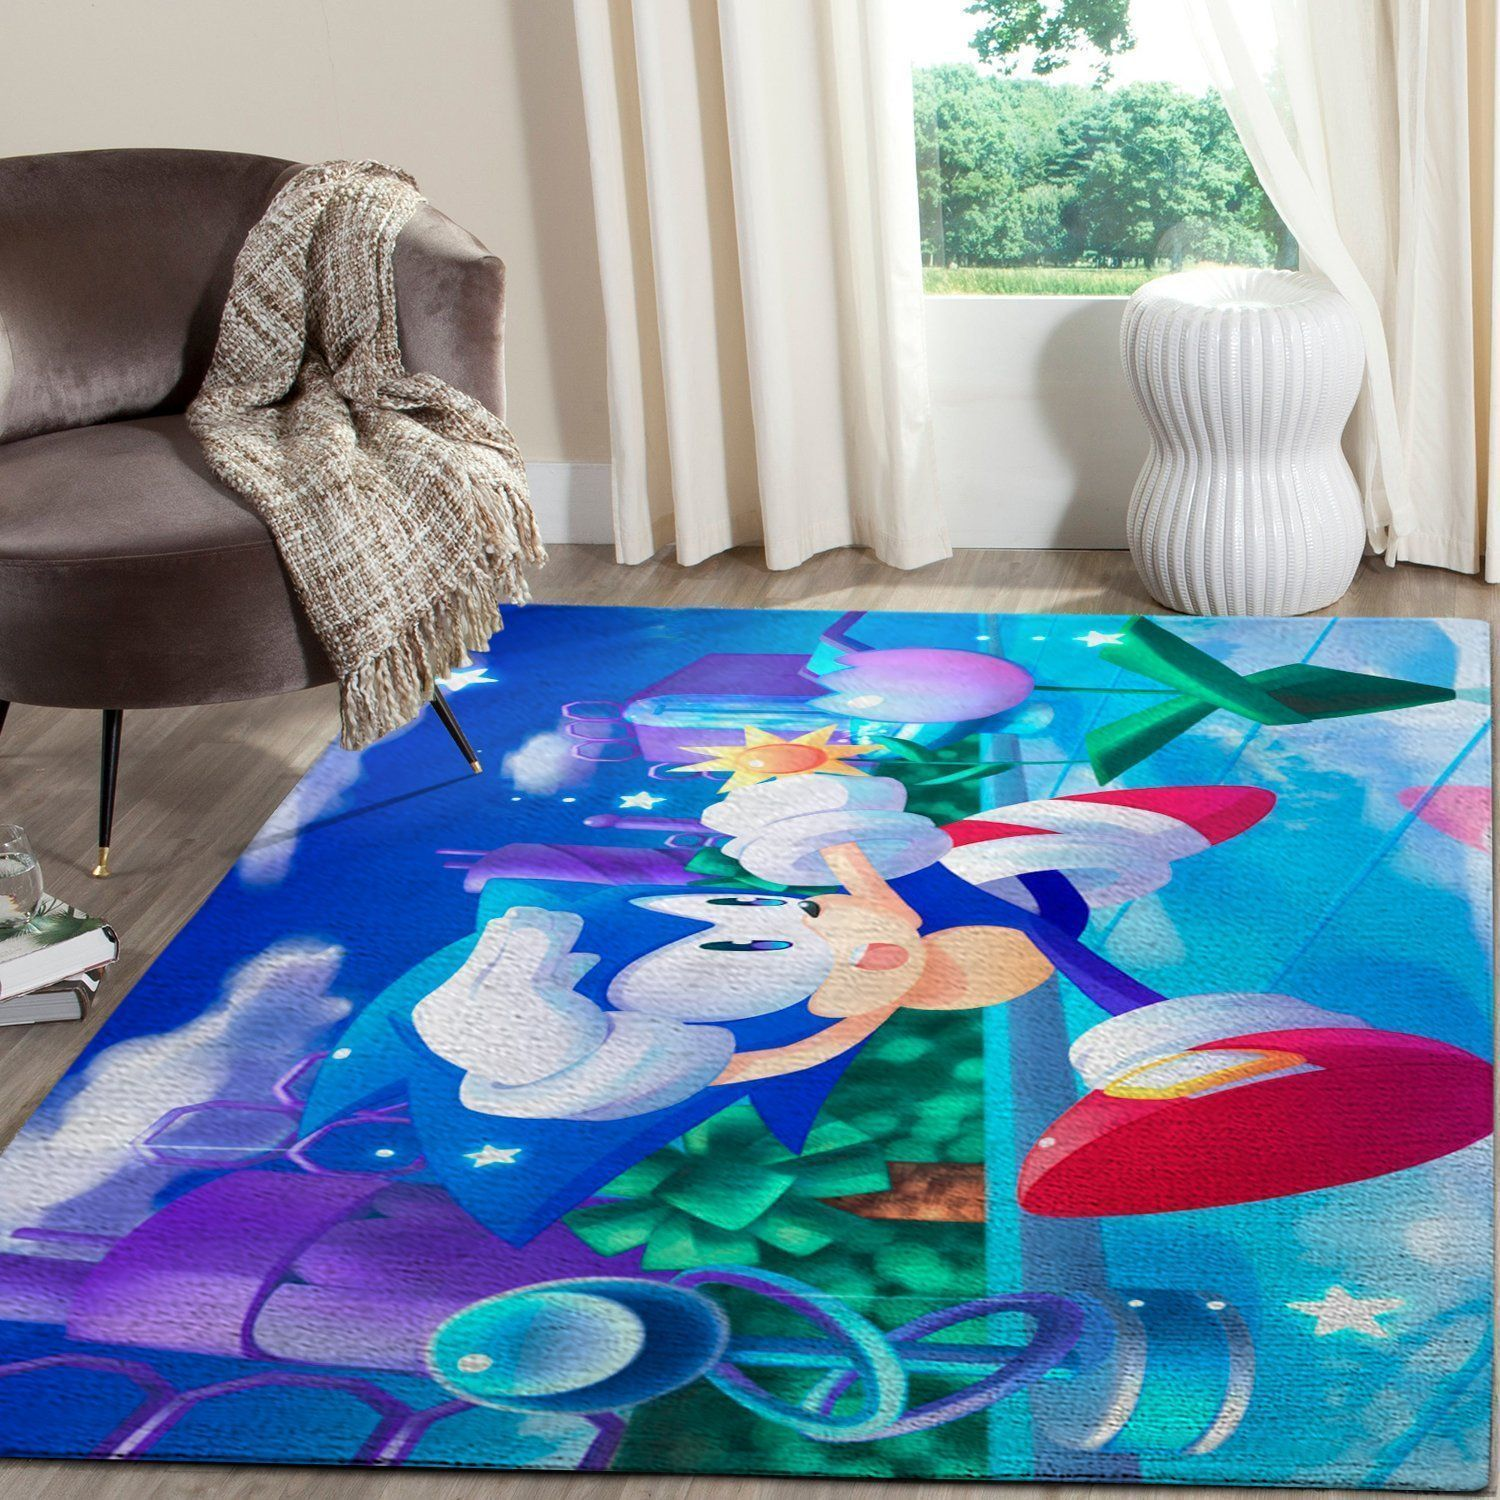 Sonic the Hedgehog Area Rug / Gaming Carpet, Gamer Living Room Rugs, Floor Decor 101112